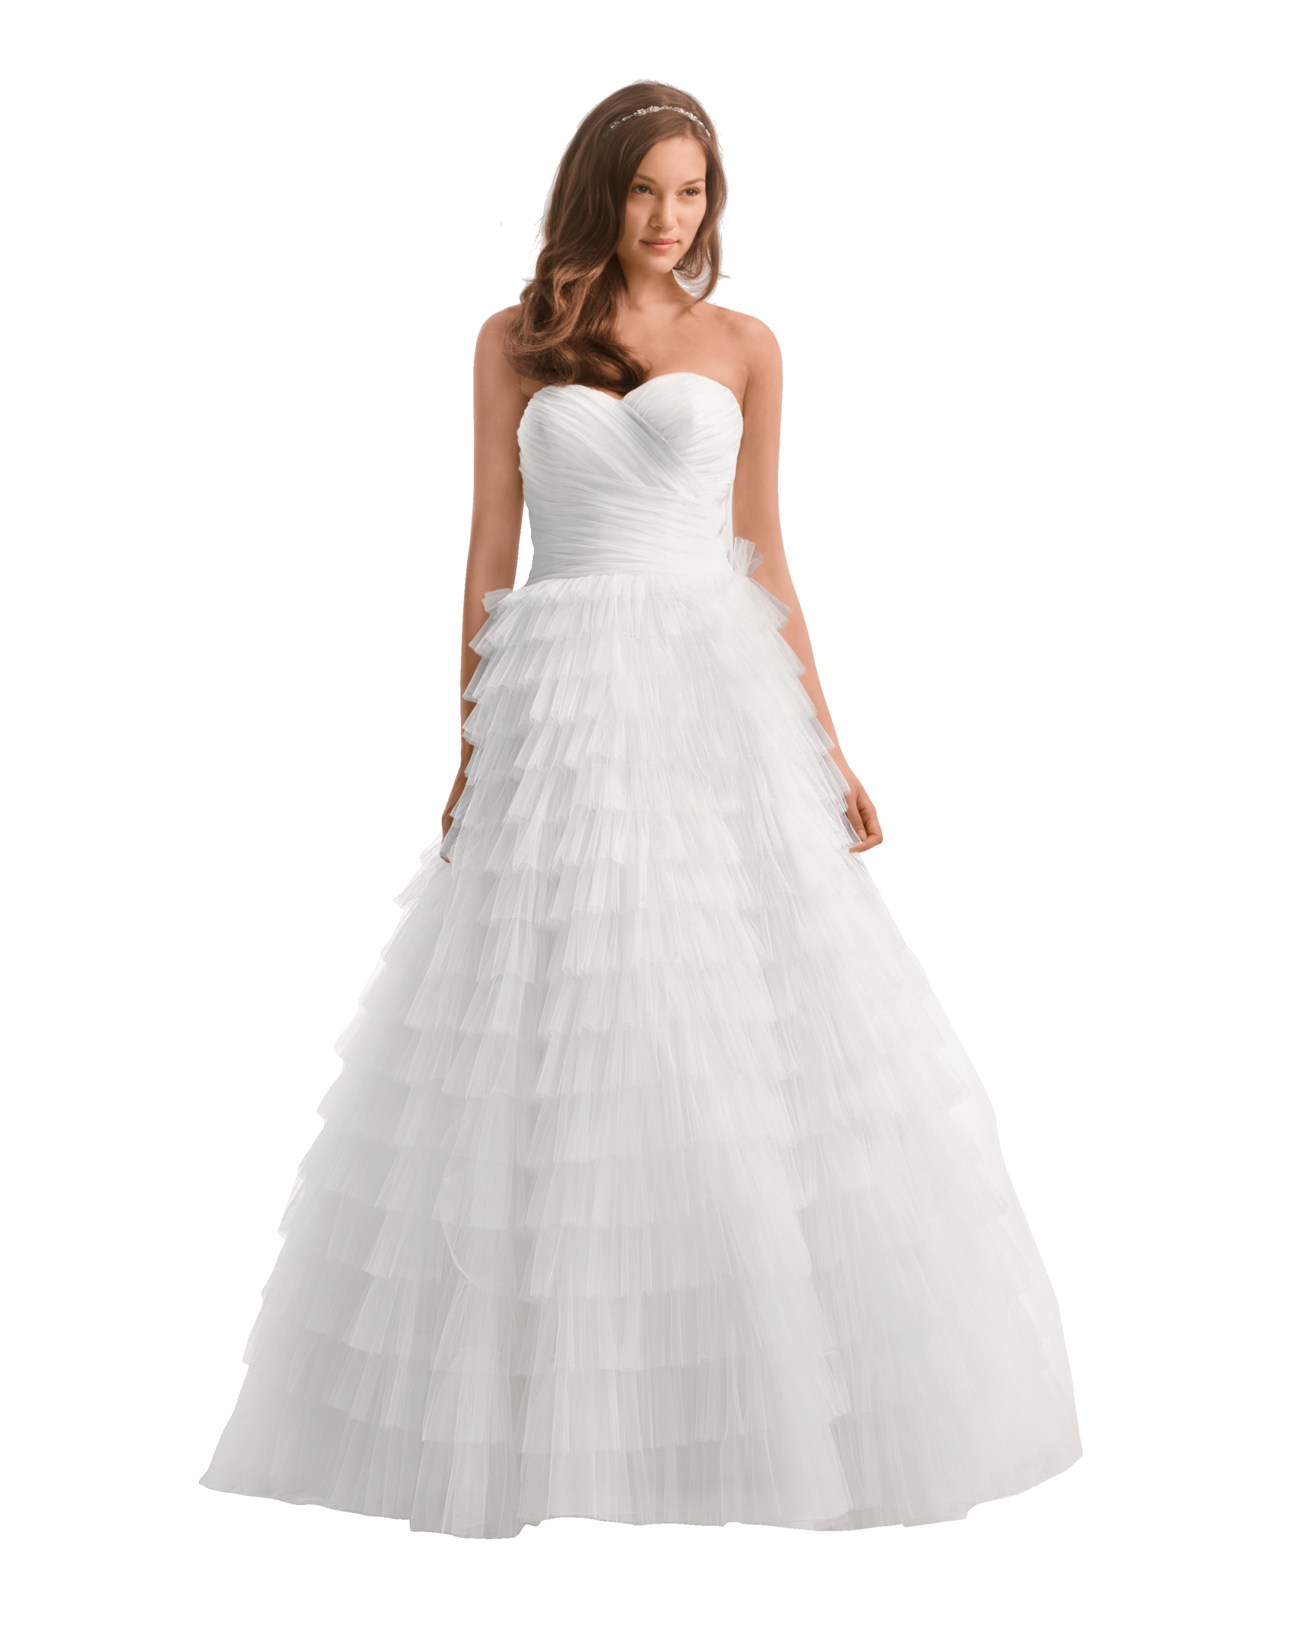 a-line-gown-4-mwd107284.jpg